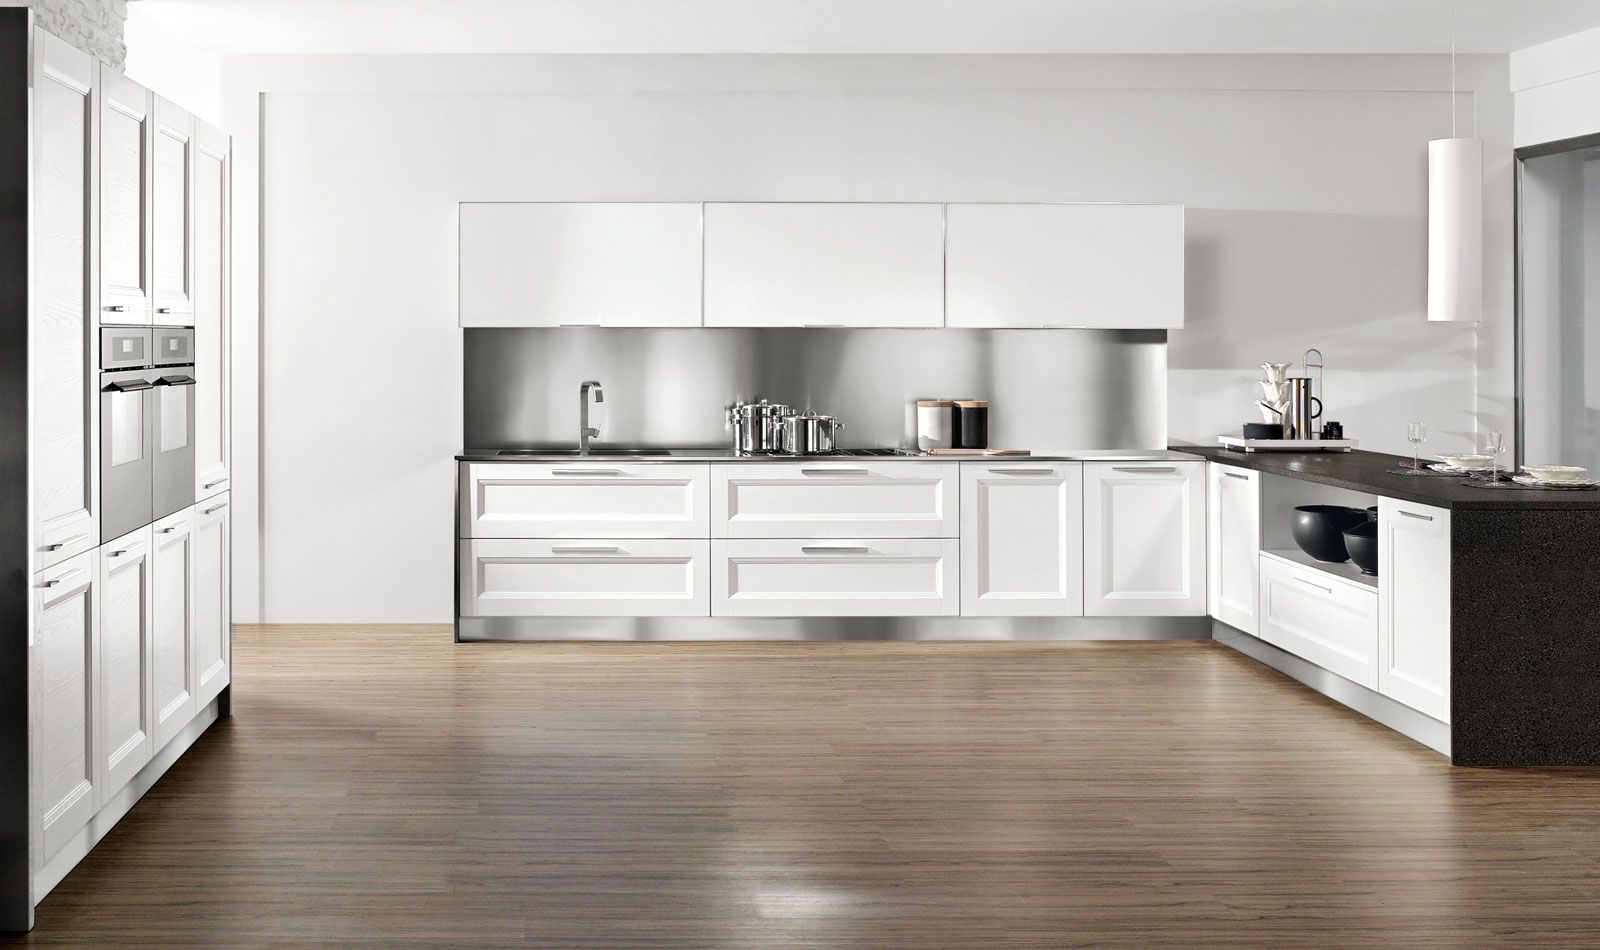 12 best Cucine Moderne - Giò images on Pinterest | Contemporary ...